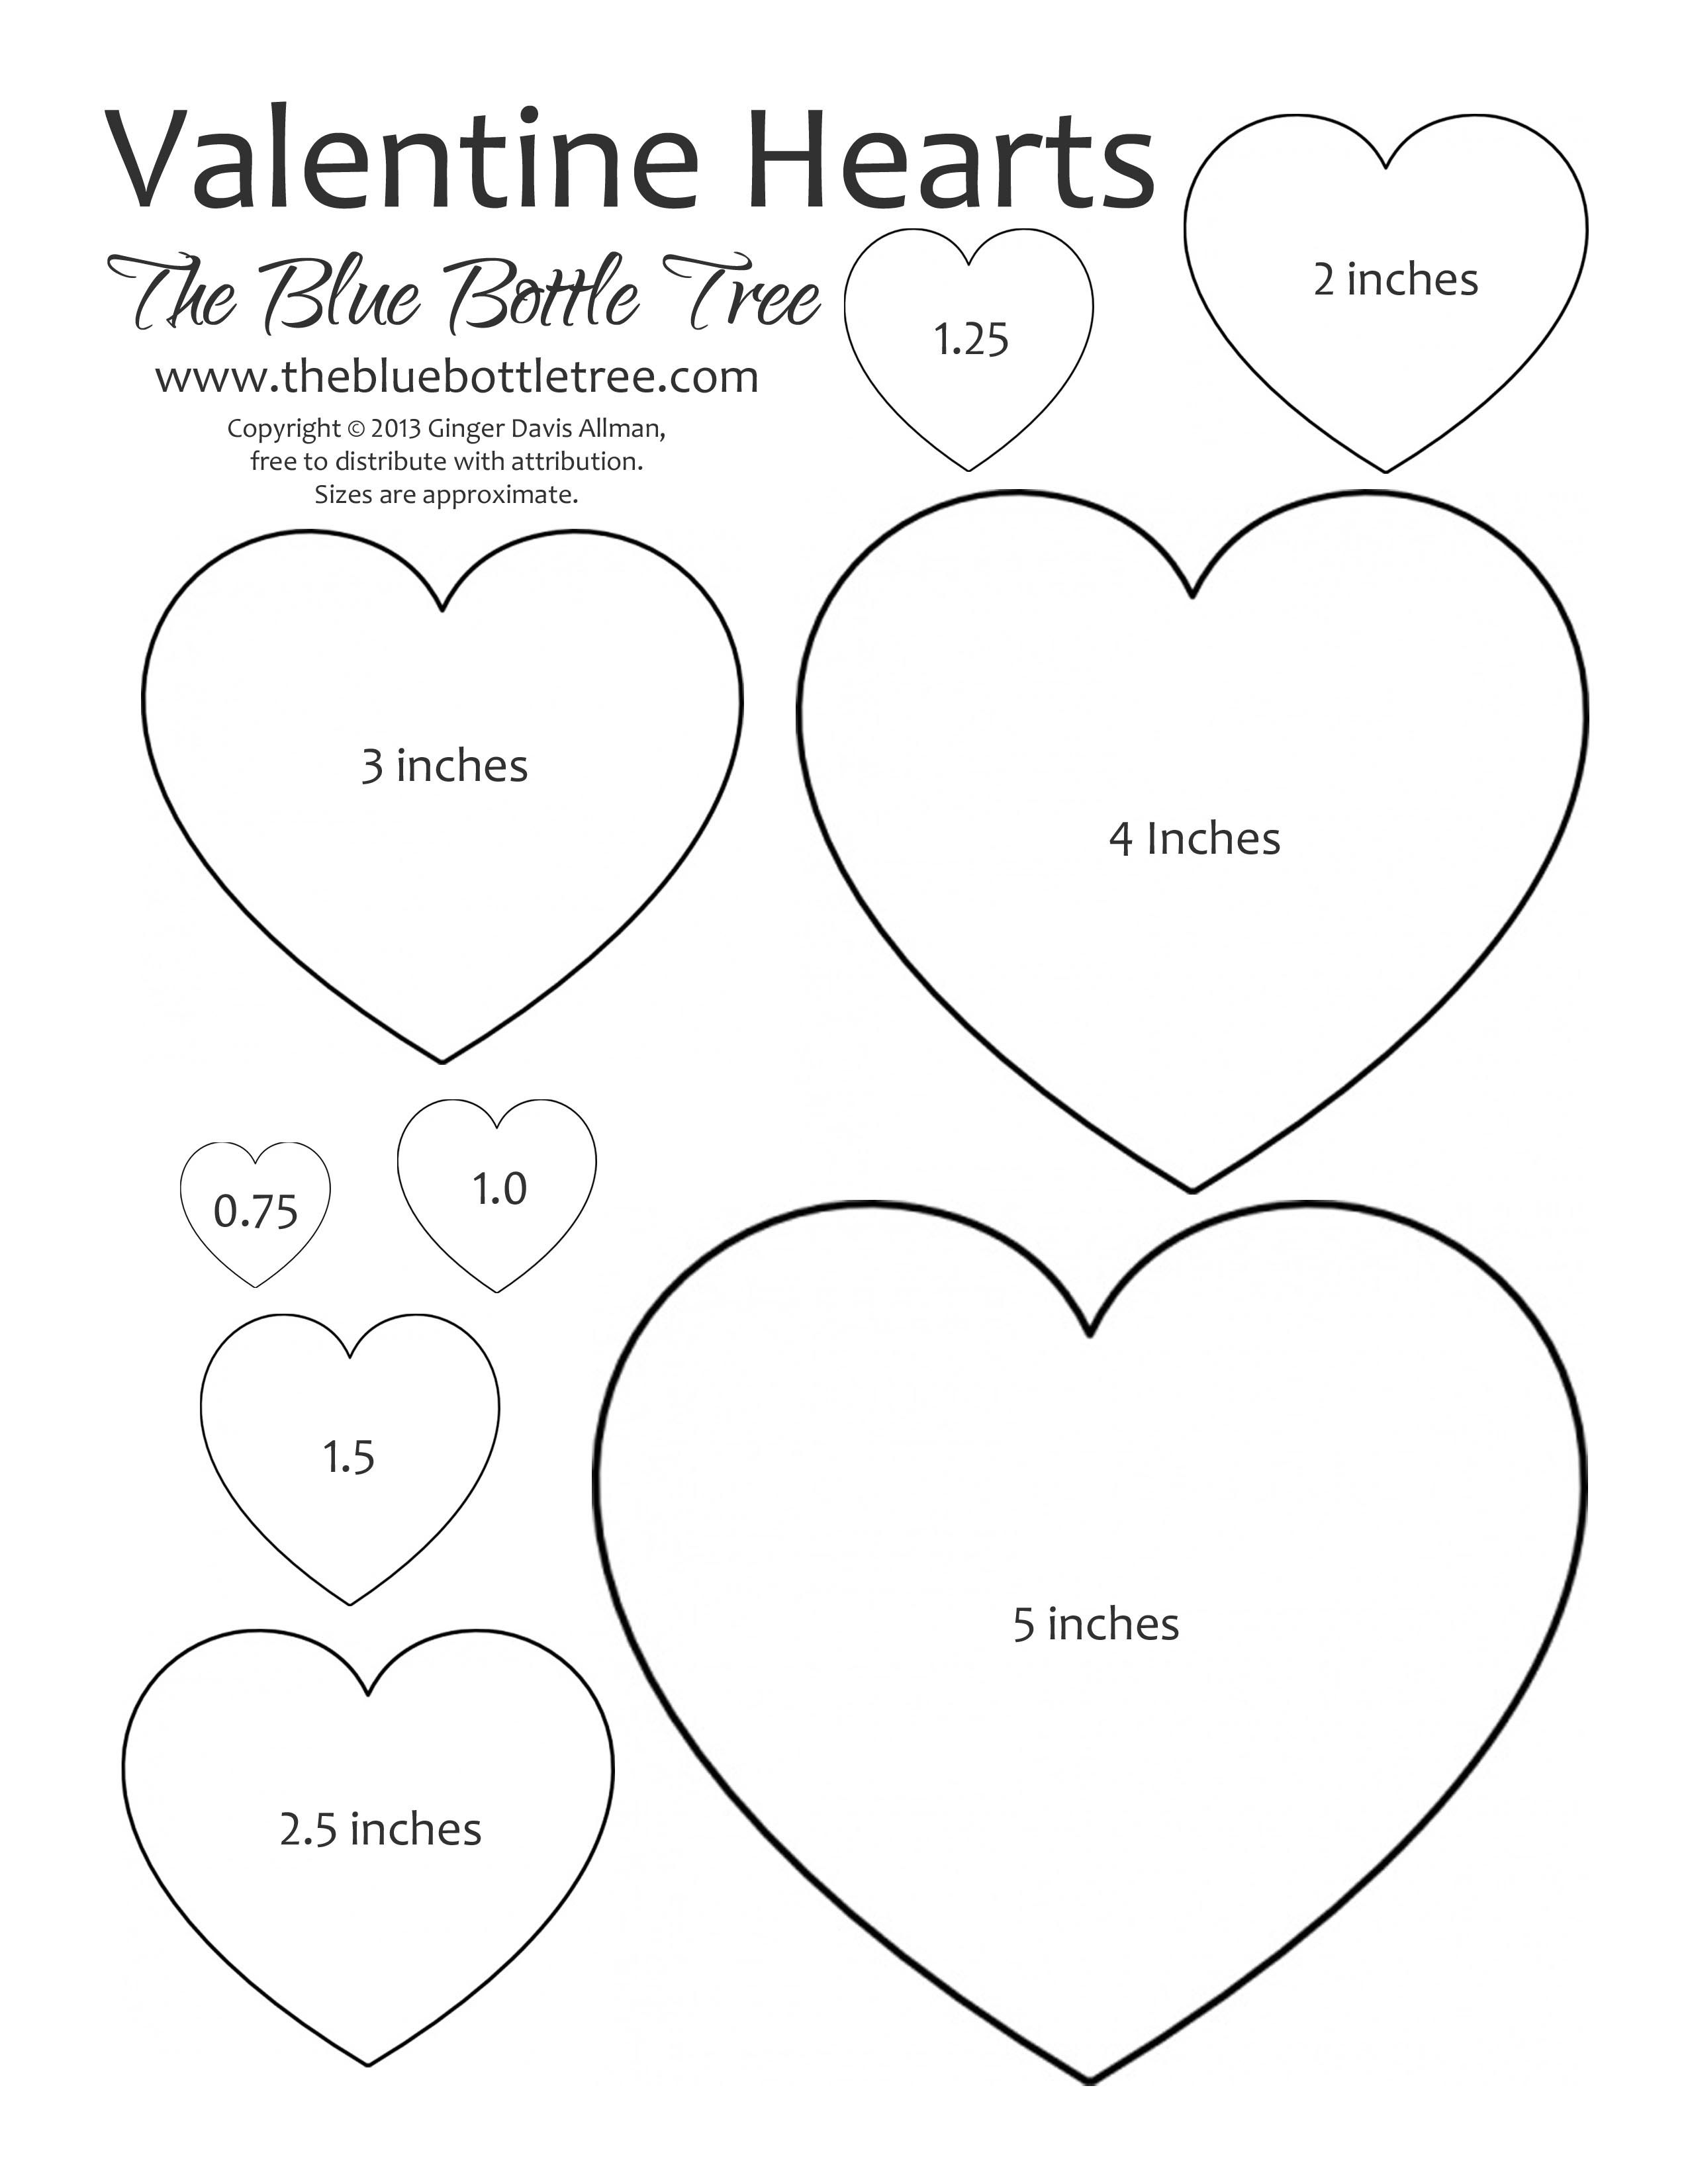 Valentine Heart Printable Clipart | Crafting Tips And Tricks - Free Printable Valentine Heart Patterns